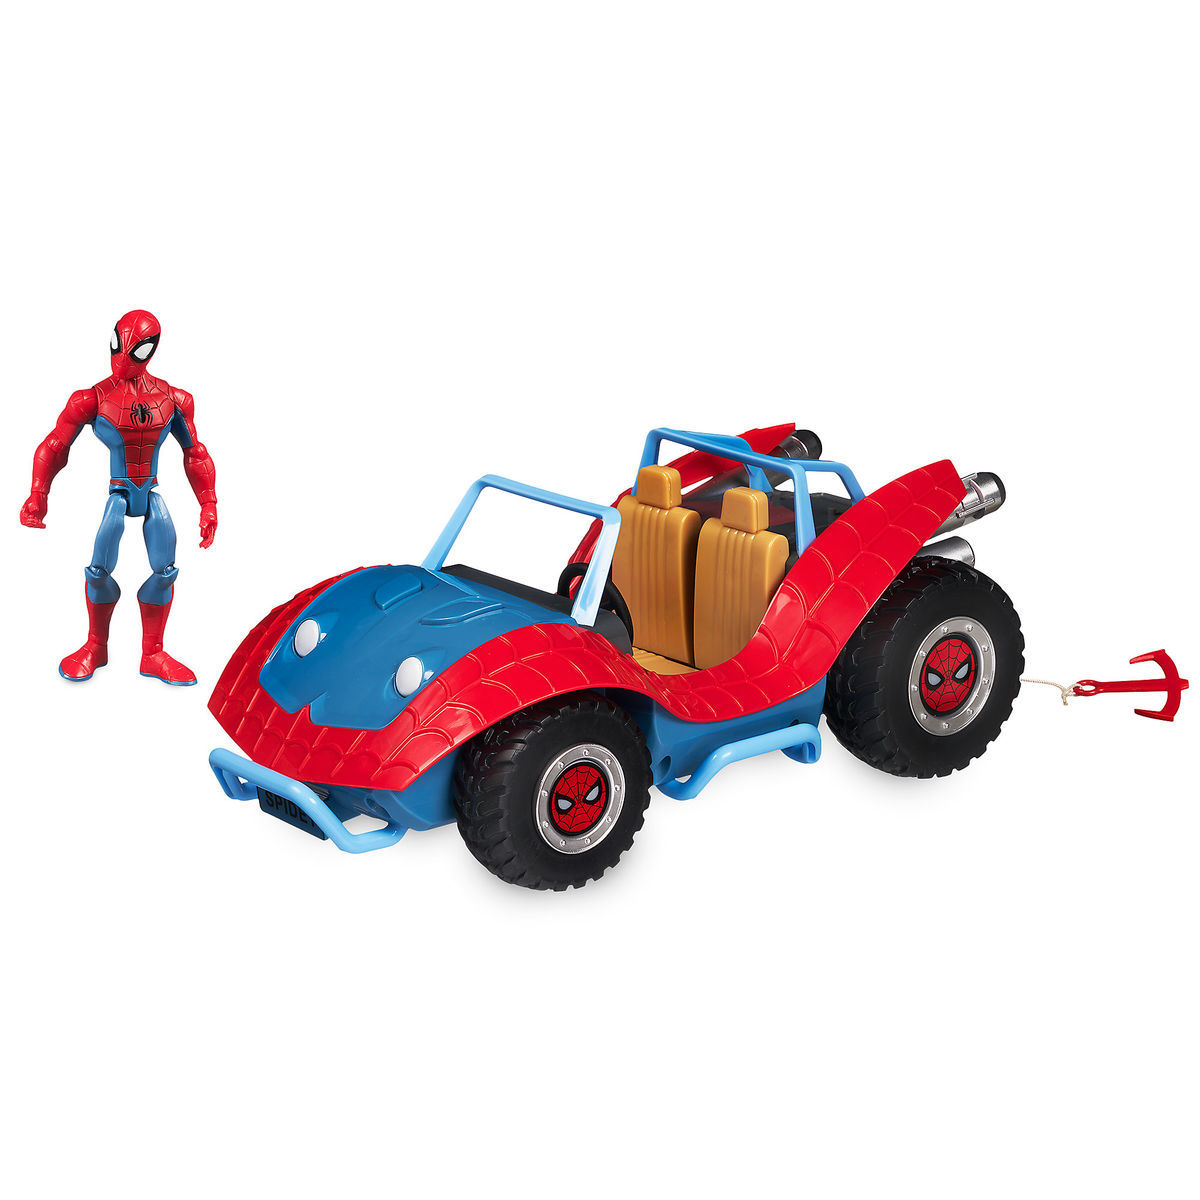 Disney Store Exclusive Spider-Man With Spider Mobile Playset Available Once More